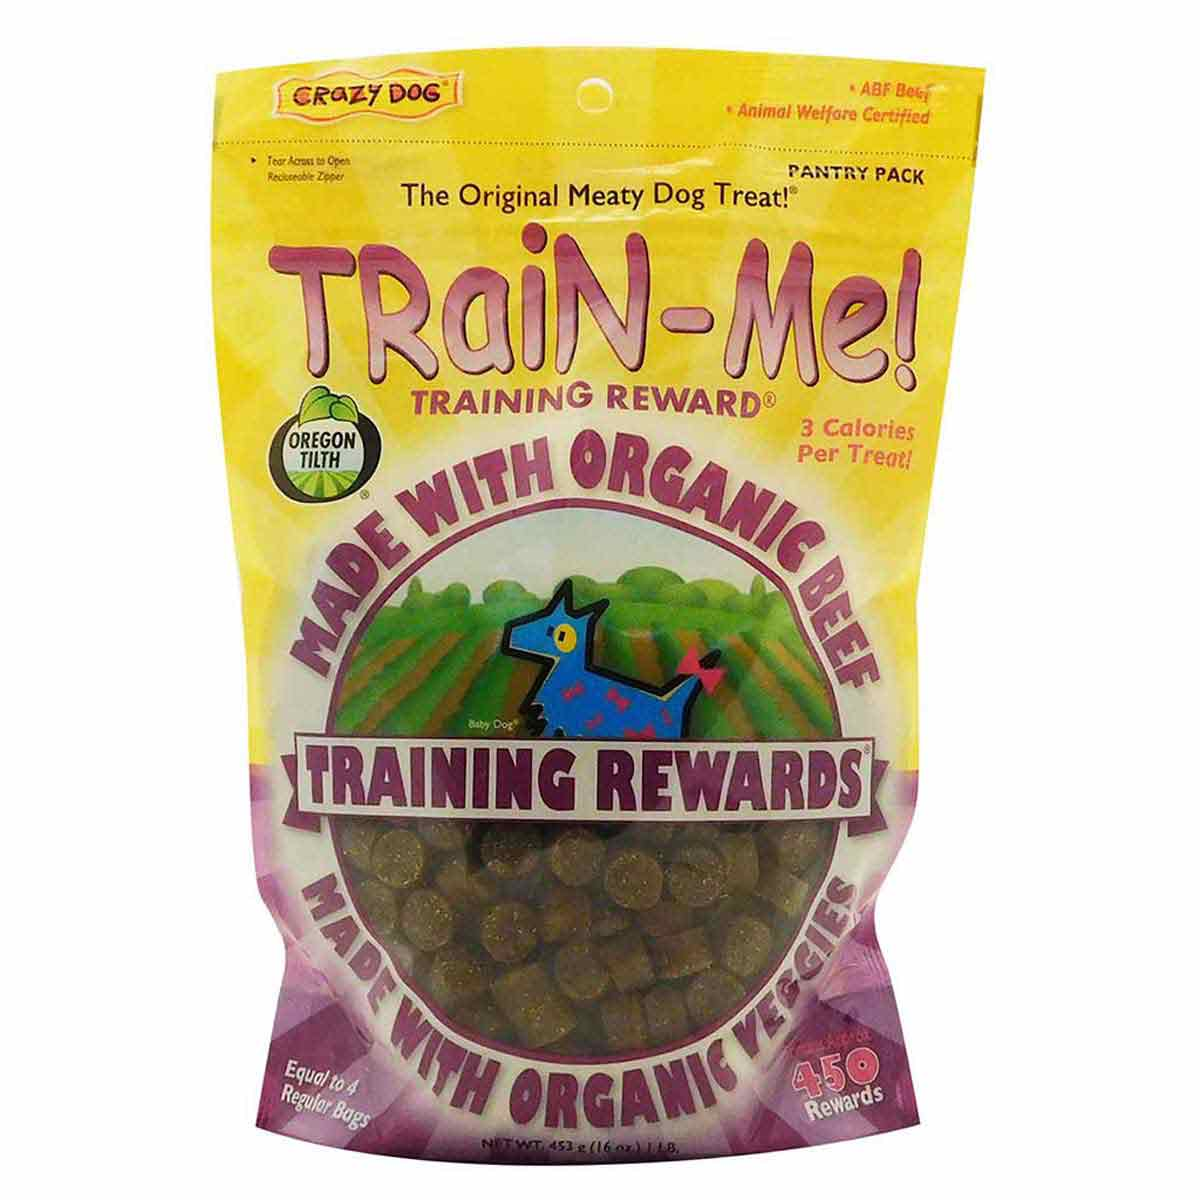 Crazy Dog Organic Train-Me! Treats - Beef 1 lb